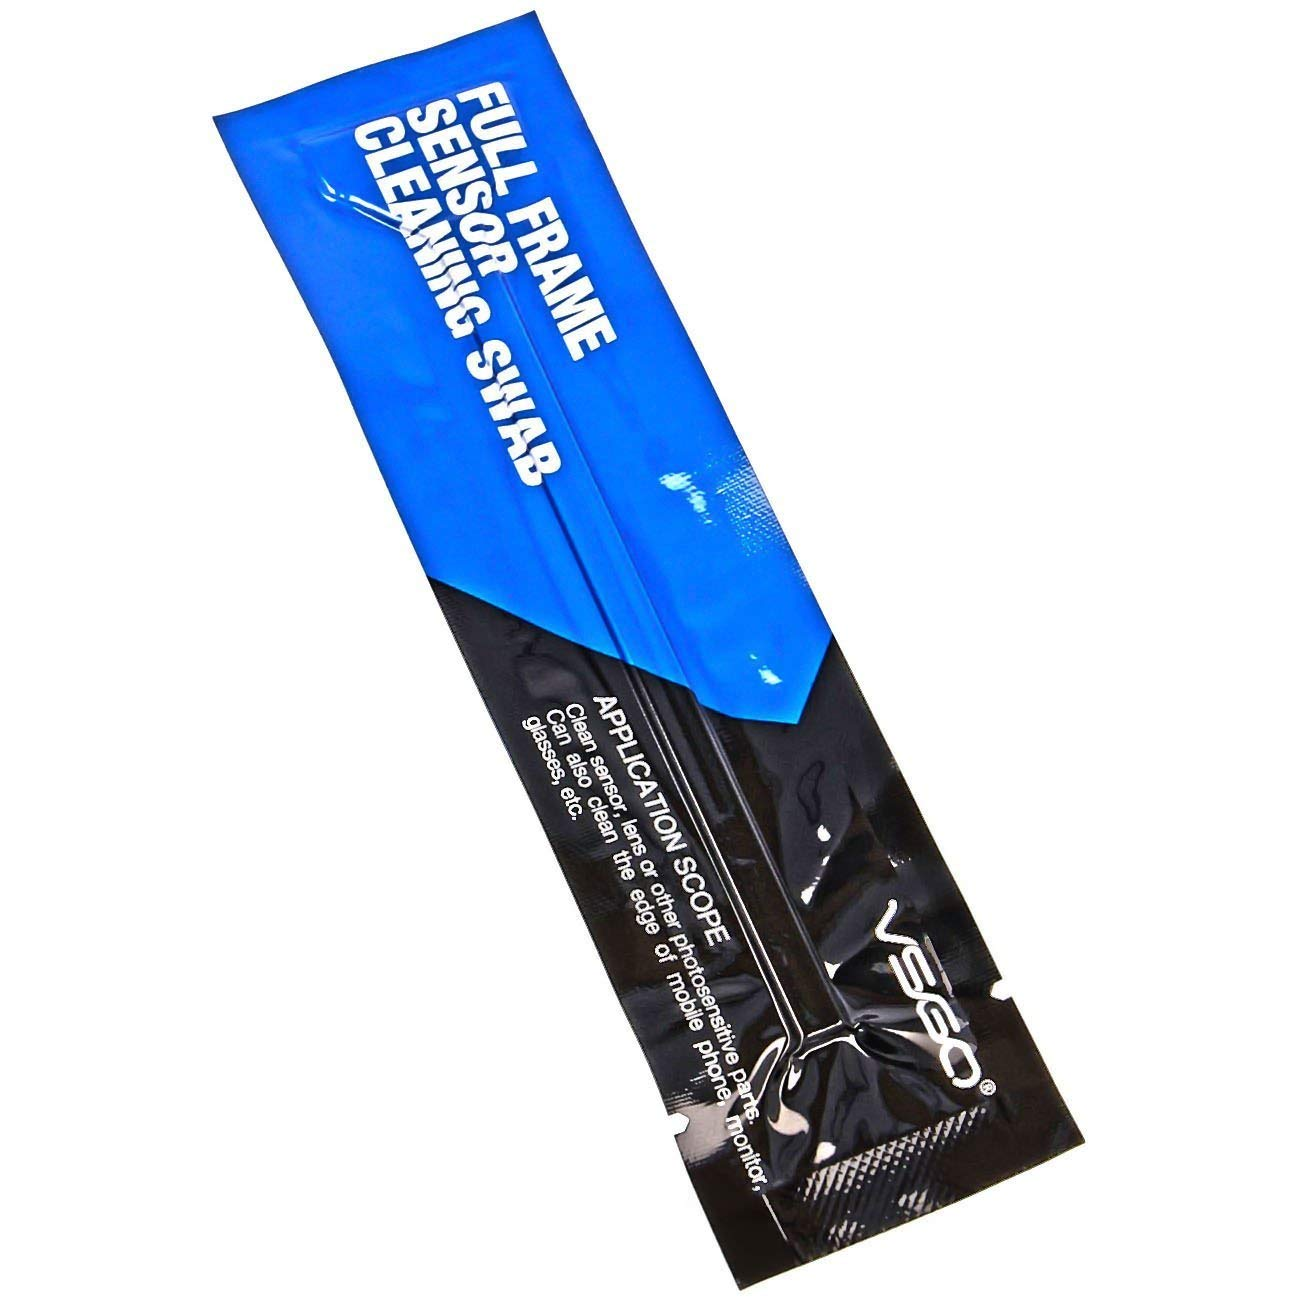 UES a Bag of 40 Individually Vacuum Packed Full-Frame Sensor Cleaning Swabs